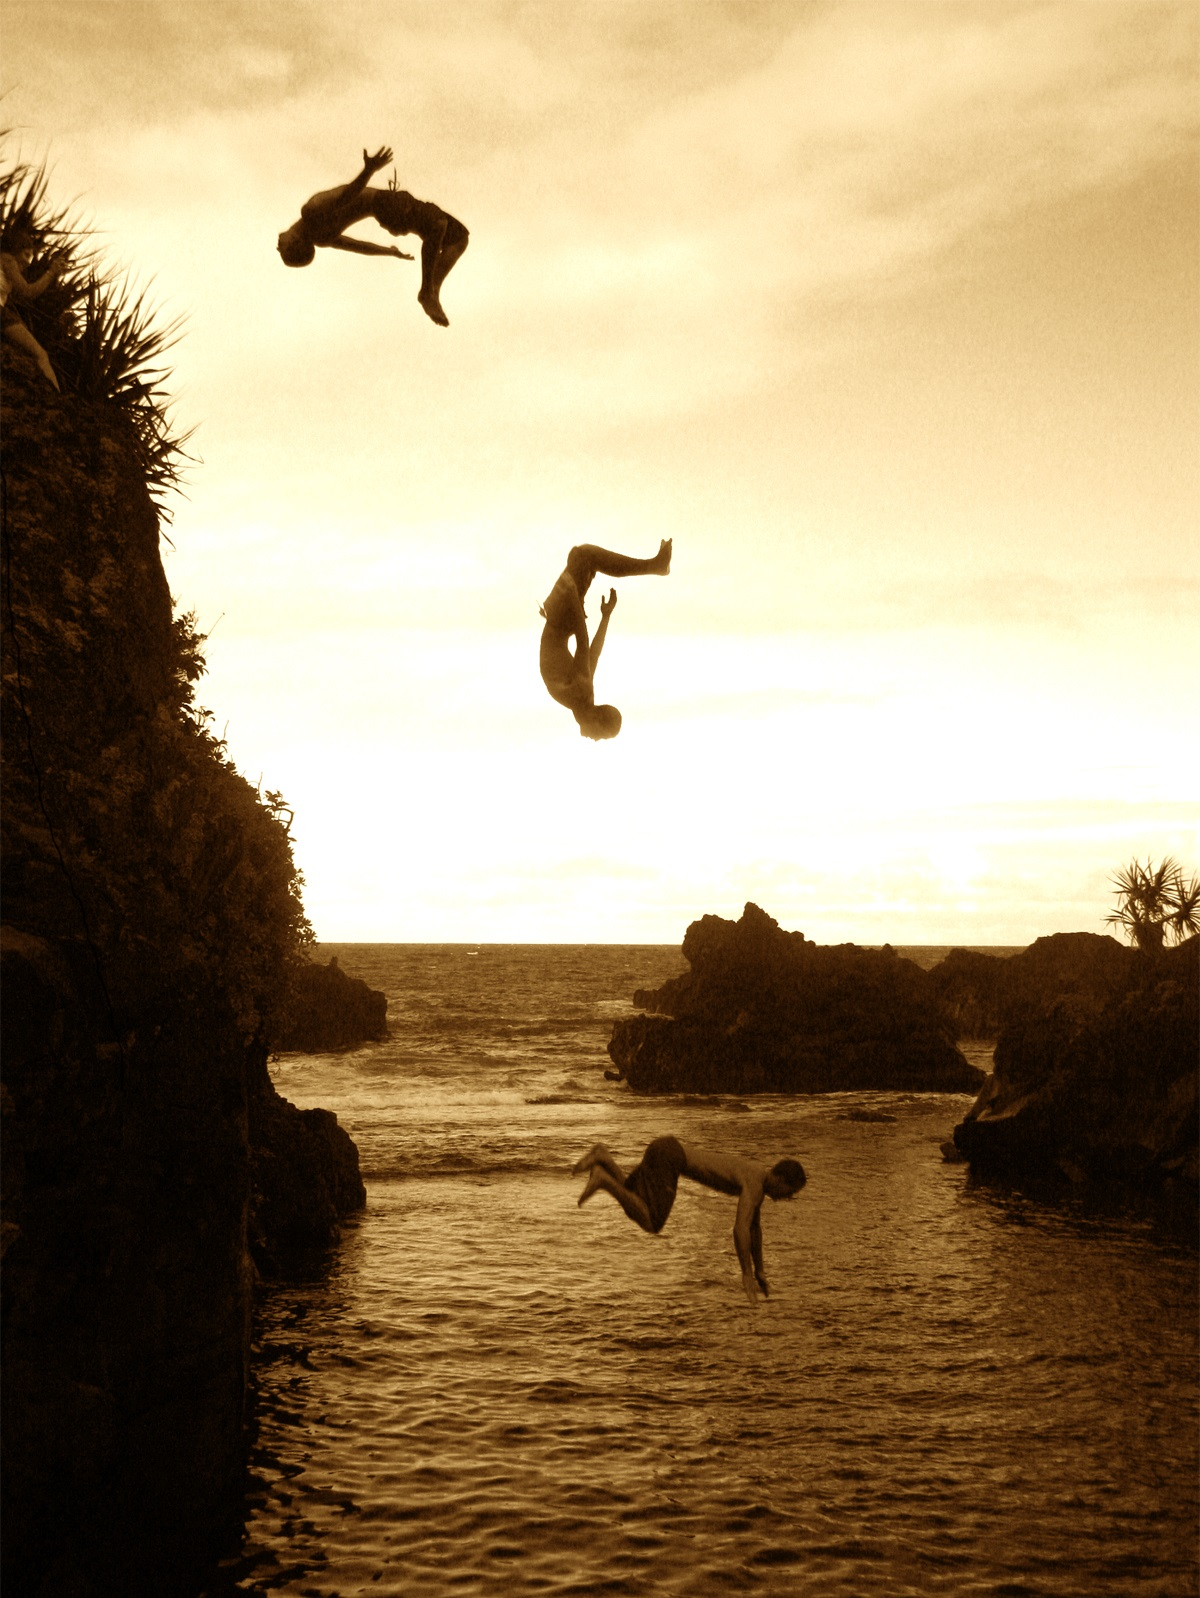 flip from cliff into water